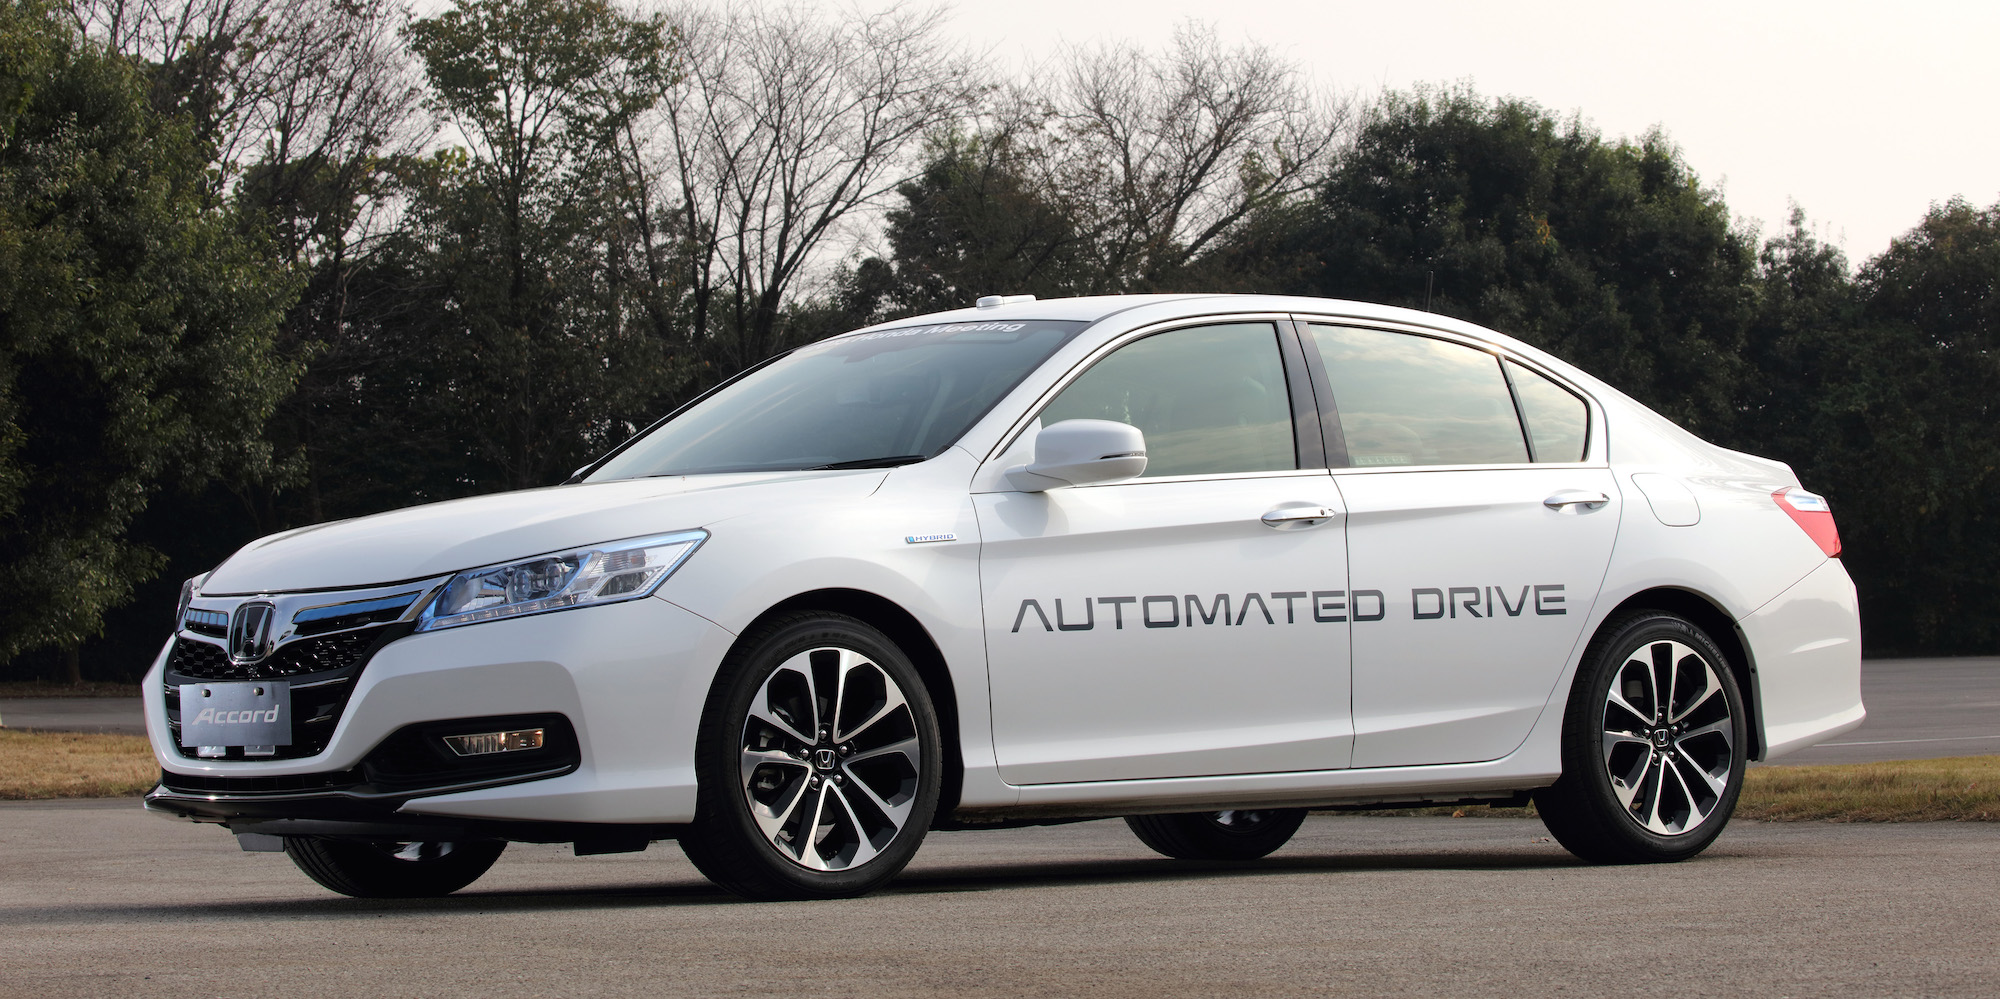 honda-accord-automated-drive